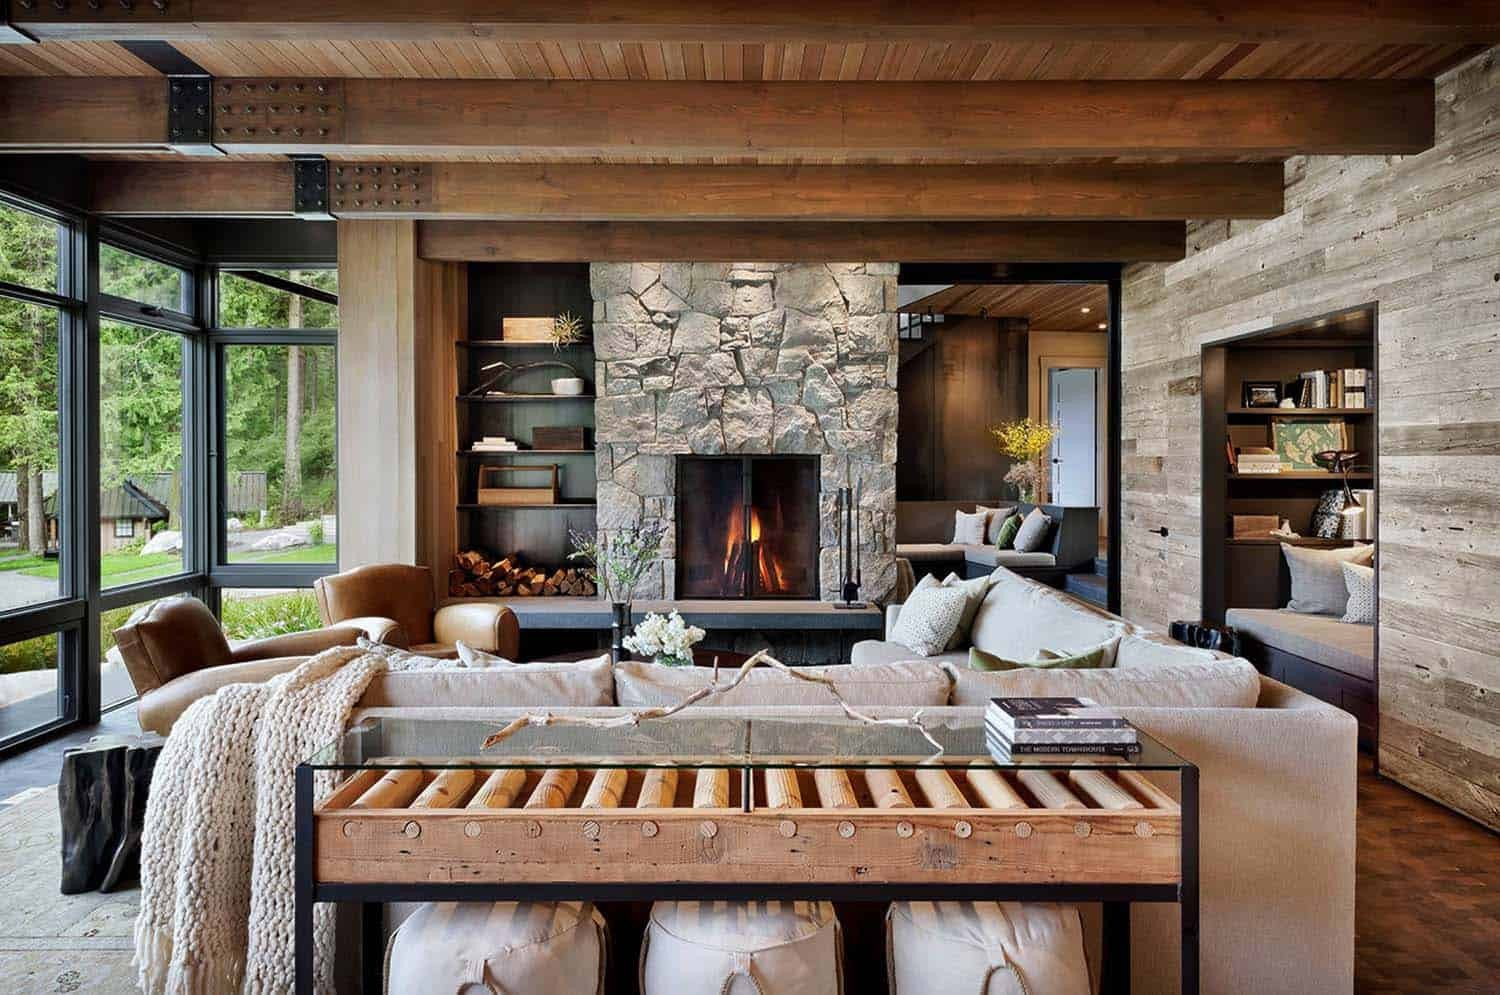 Contemporary Rustic Living Room Modern Rustic Retreat Designed to Feel Like A Summer Camp